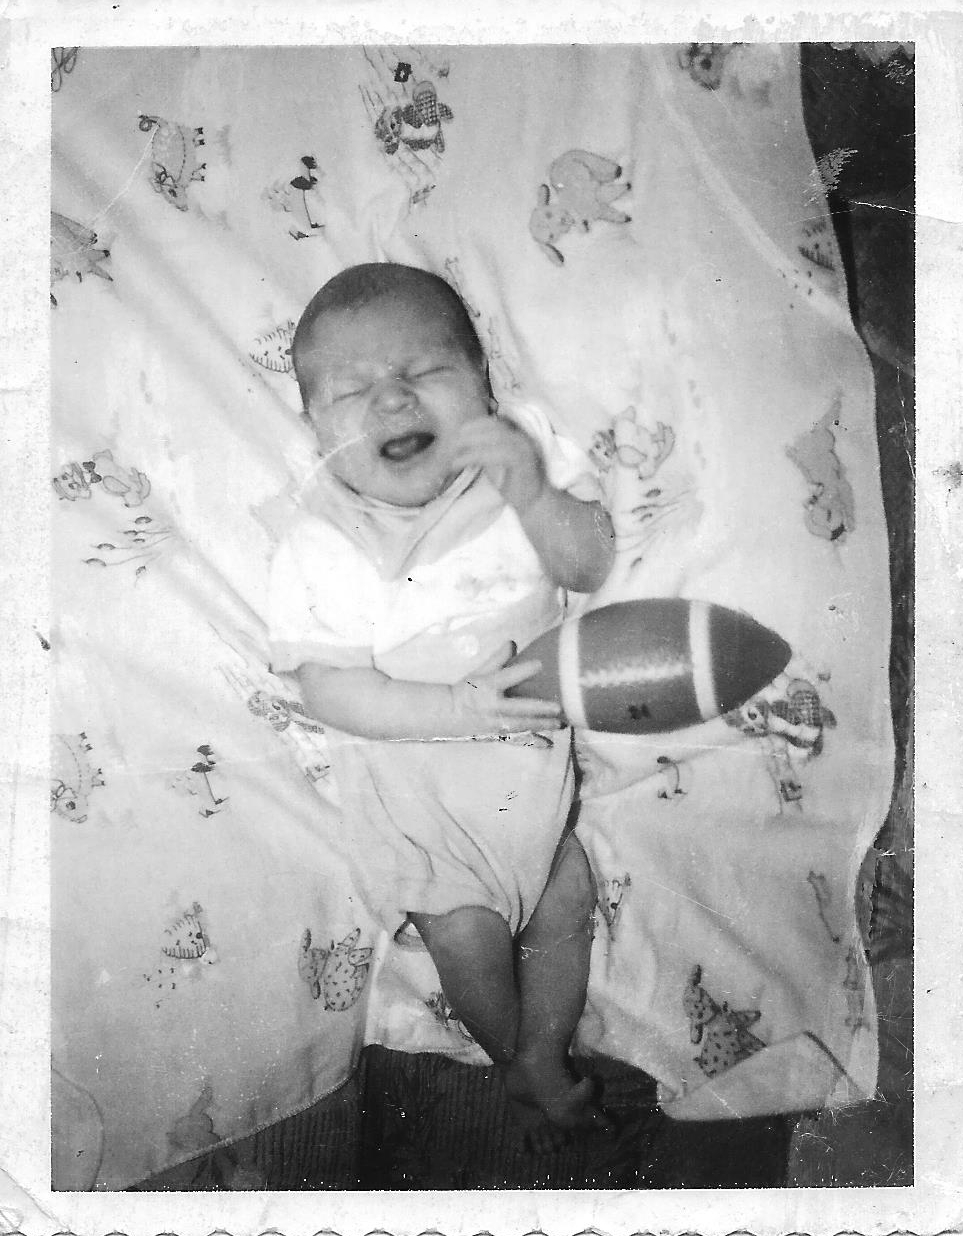 Jack baby pic with football